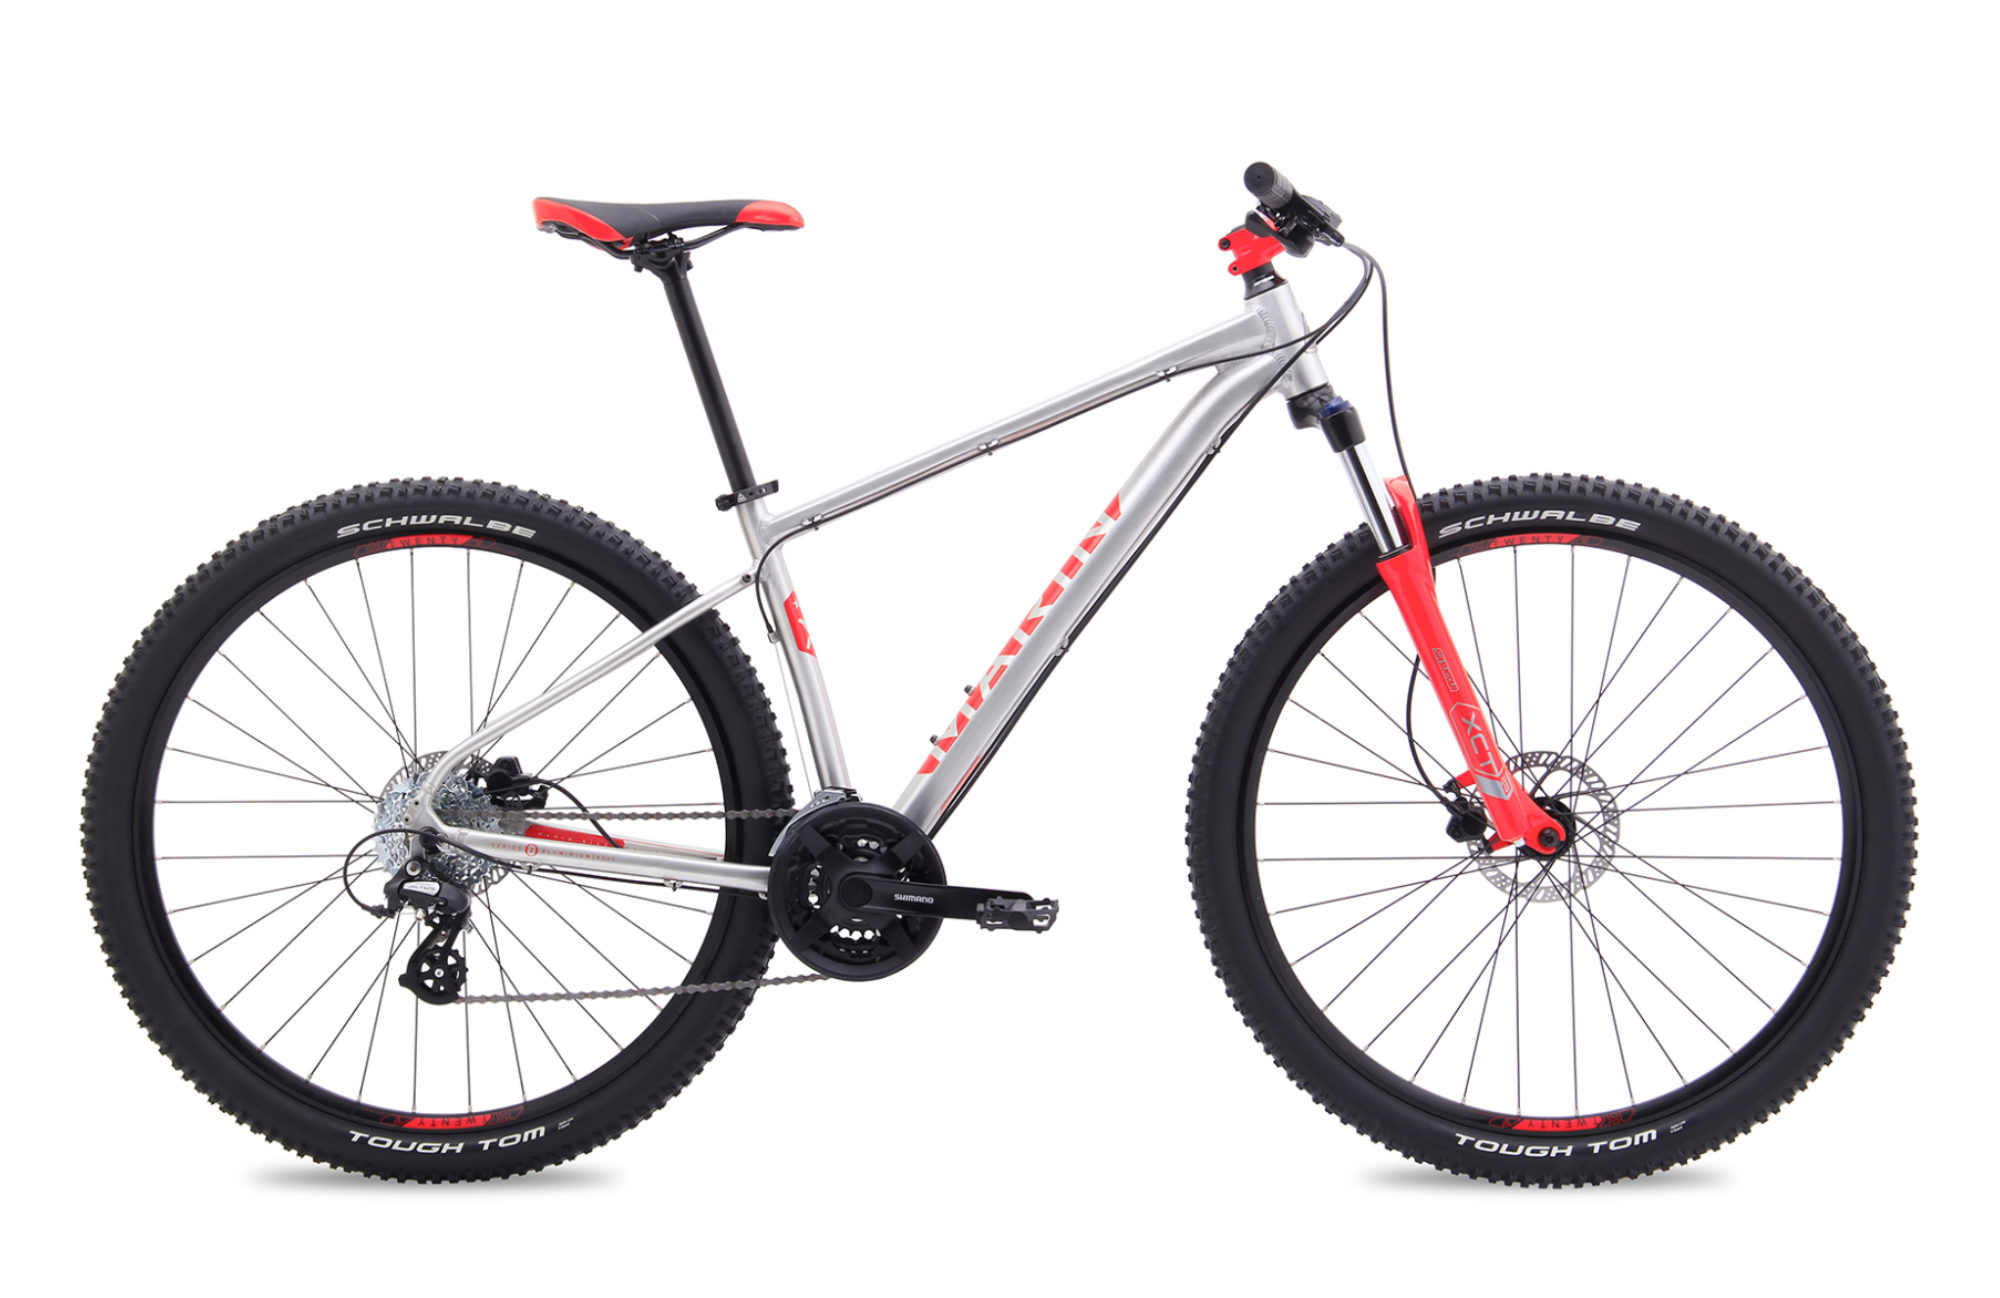 2018 Bobcat Trail 3 27.5″ or 29″ £500